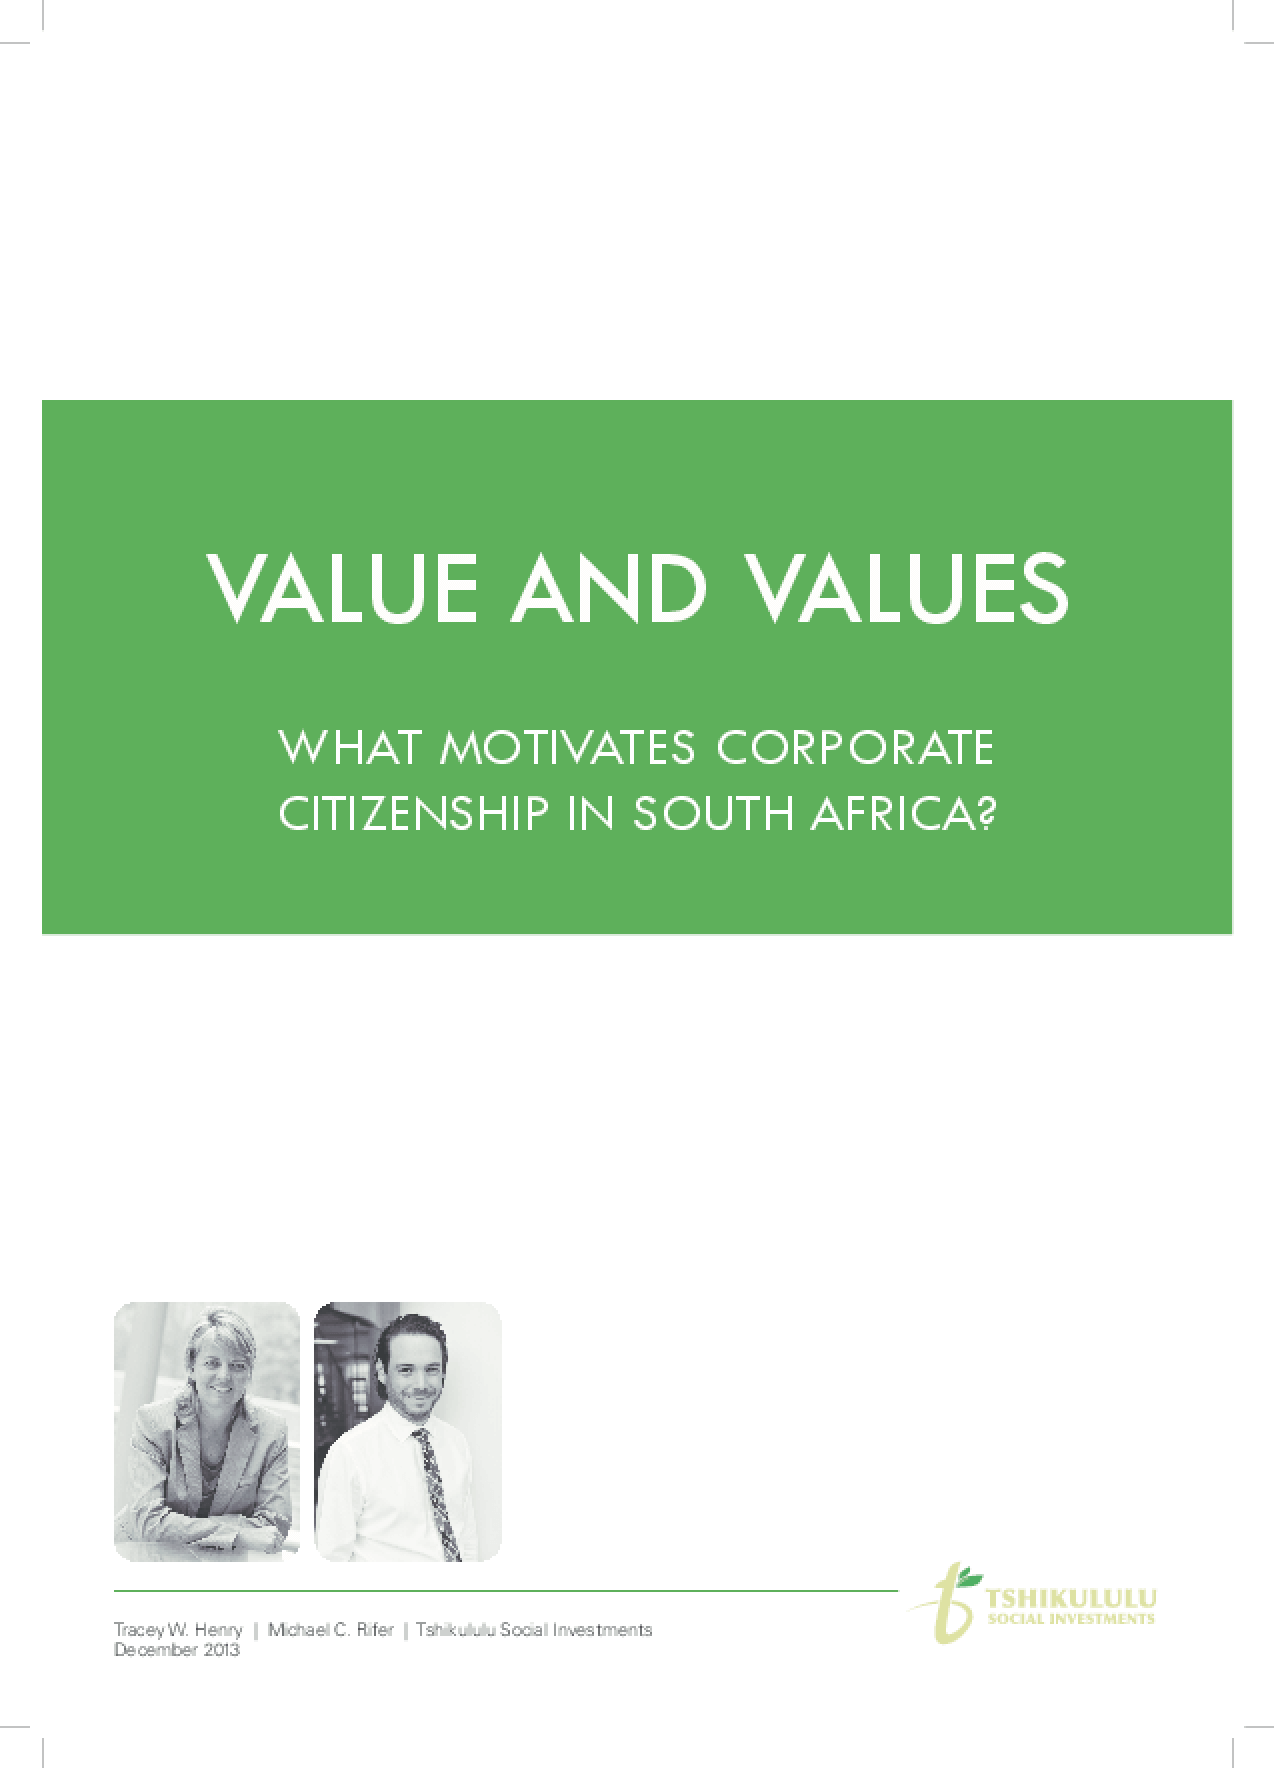 Value and Values: What Motivates Corporate Citizenship in South Africa